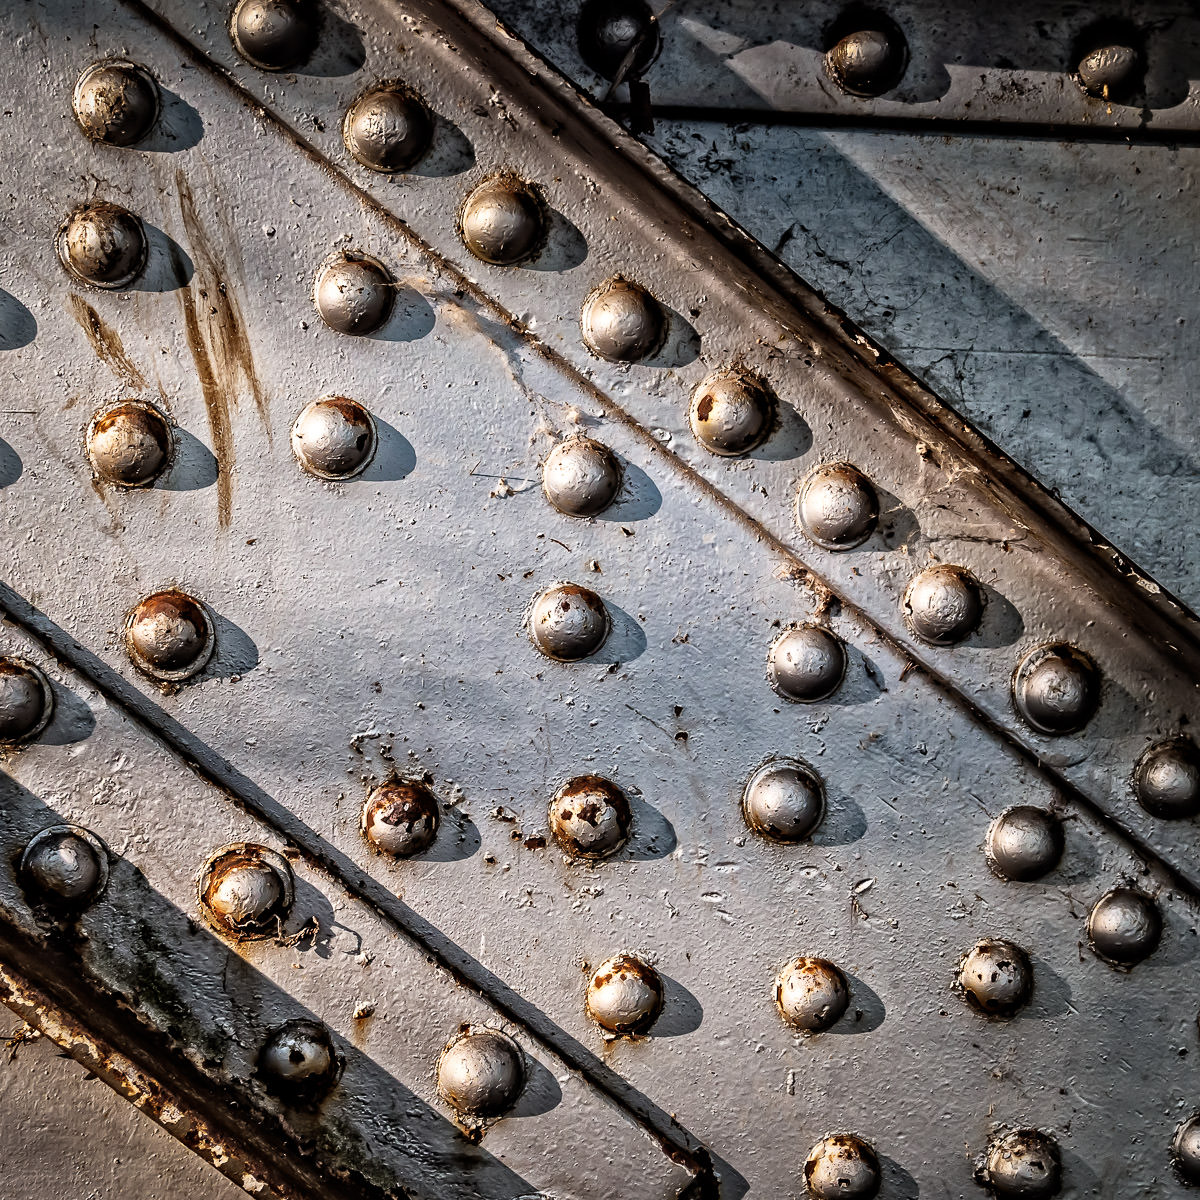 Detail of an abandoned iron railroad bridge in Waxahachie, Texas.